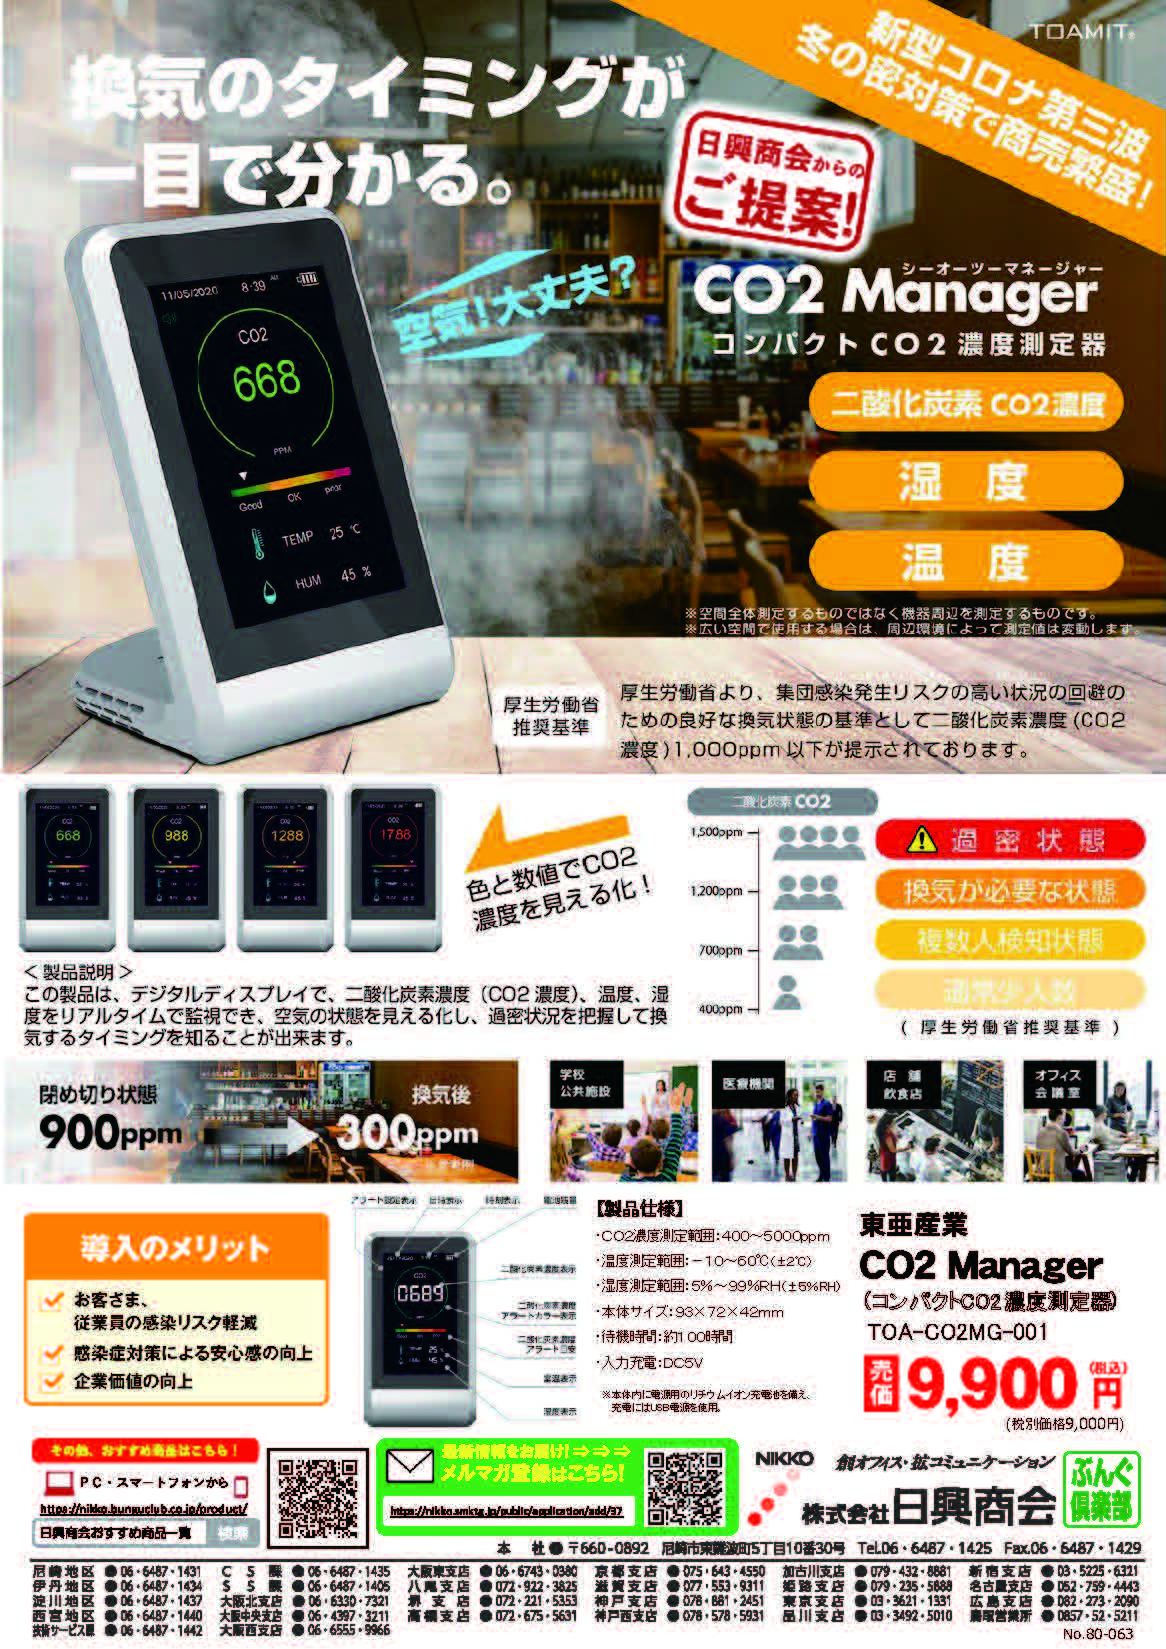 TOAMIT_CO2manager